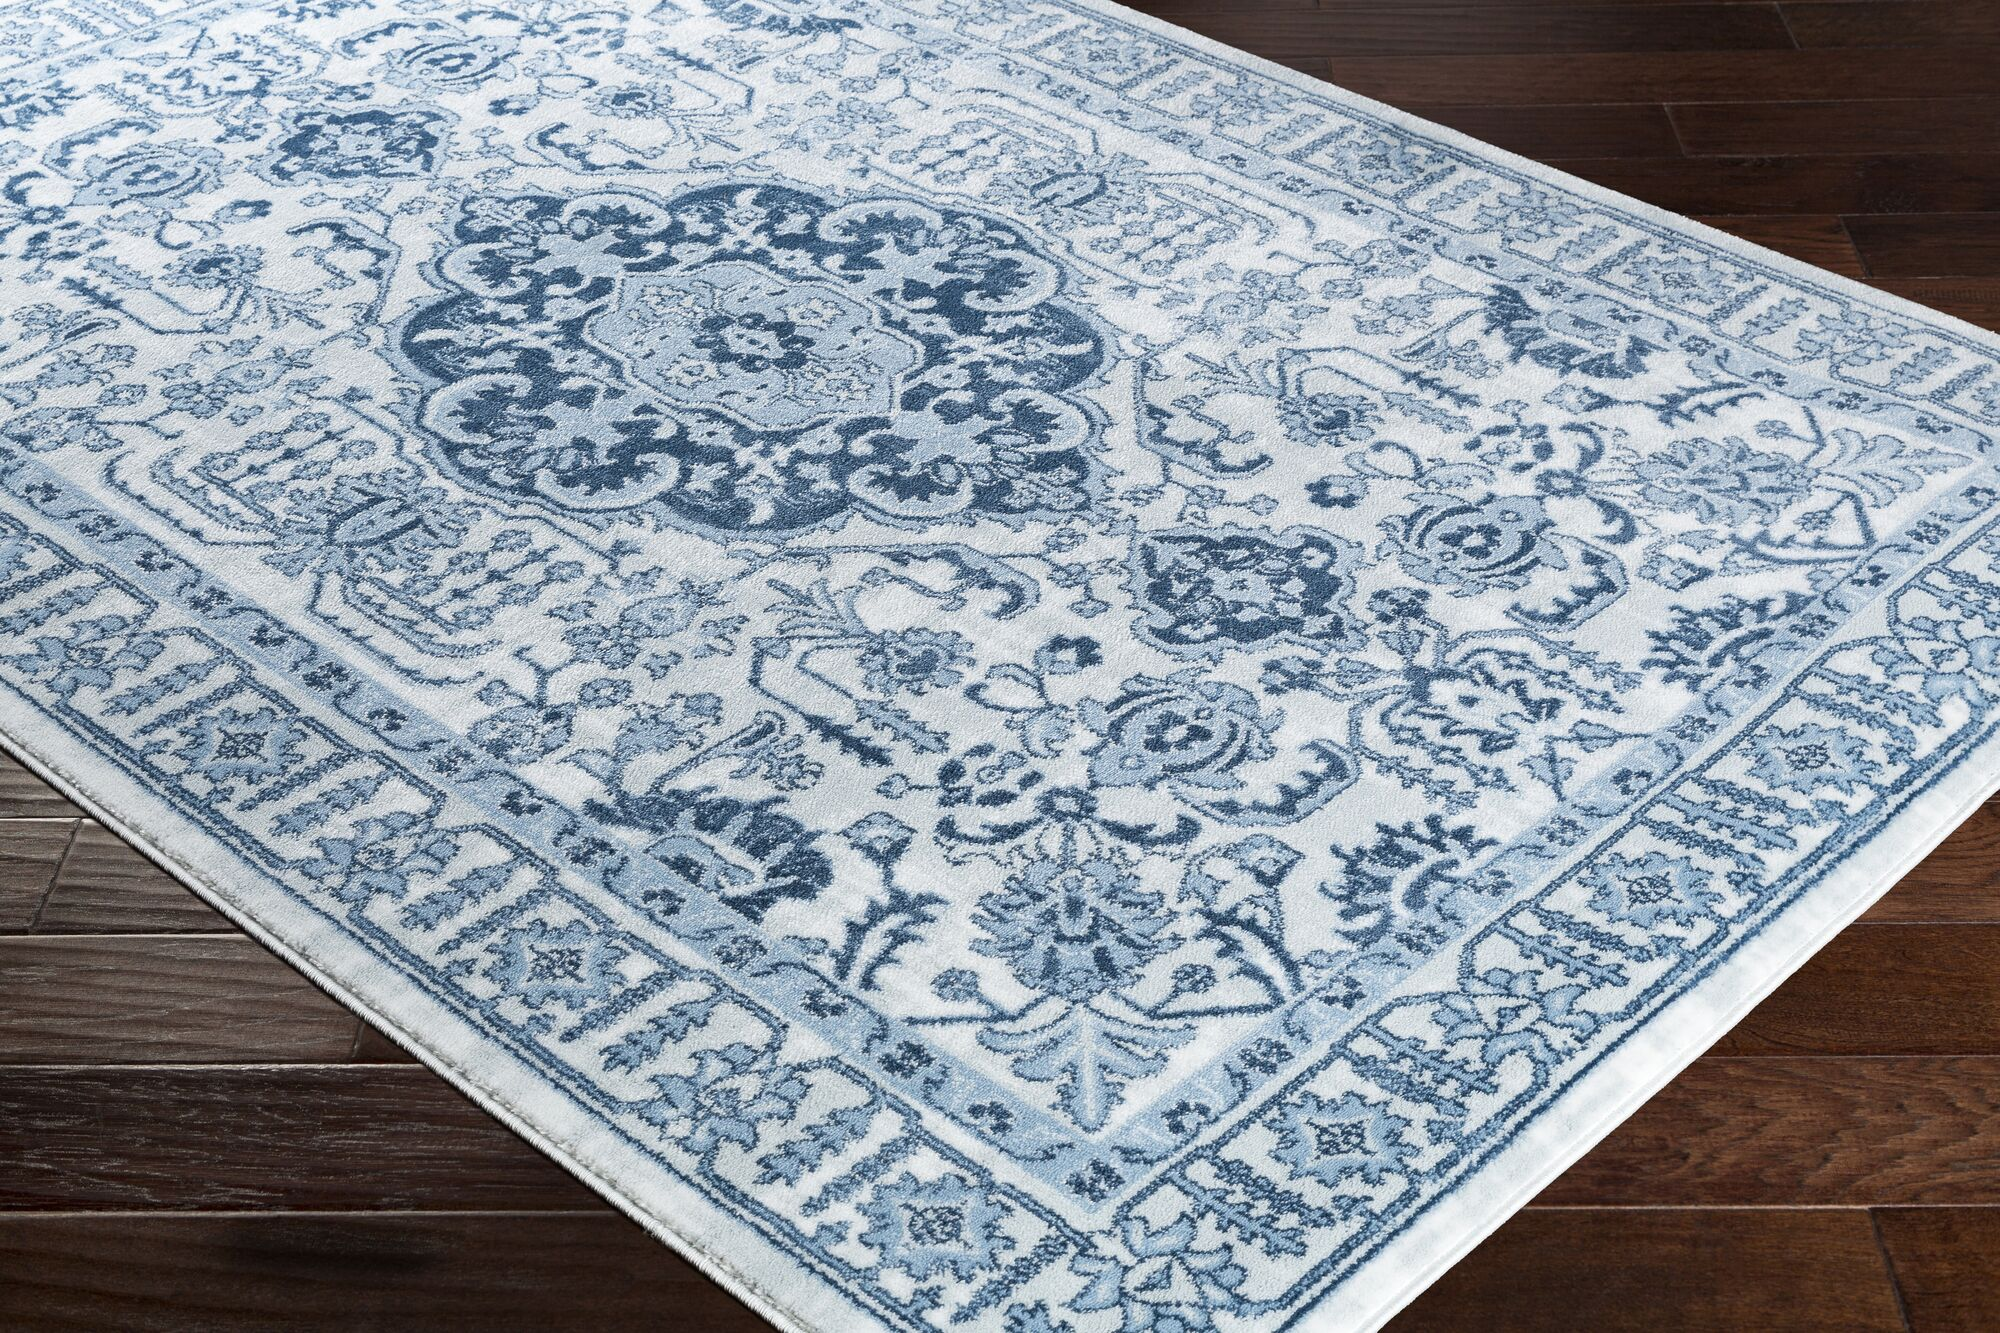 Dutil Floral Denim/Navy Area Rug Rug Size: Rectangle 7'8